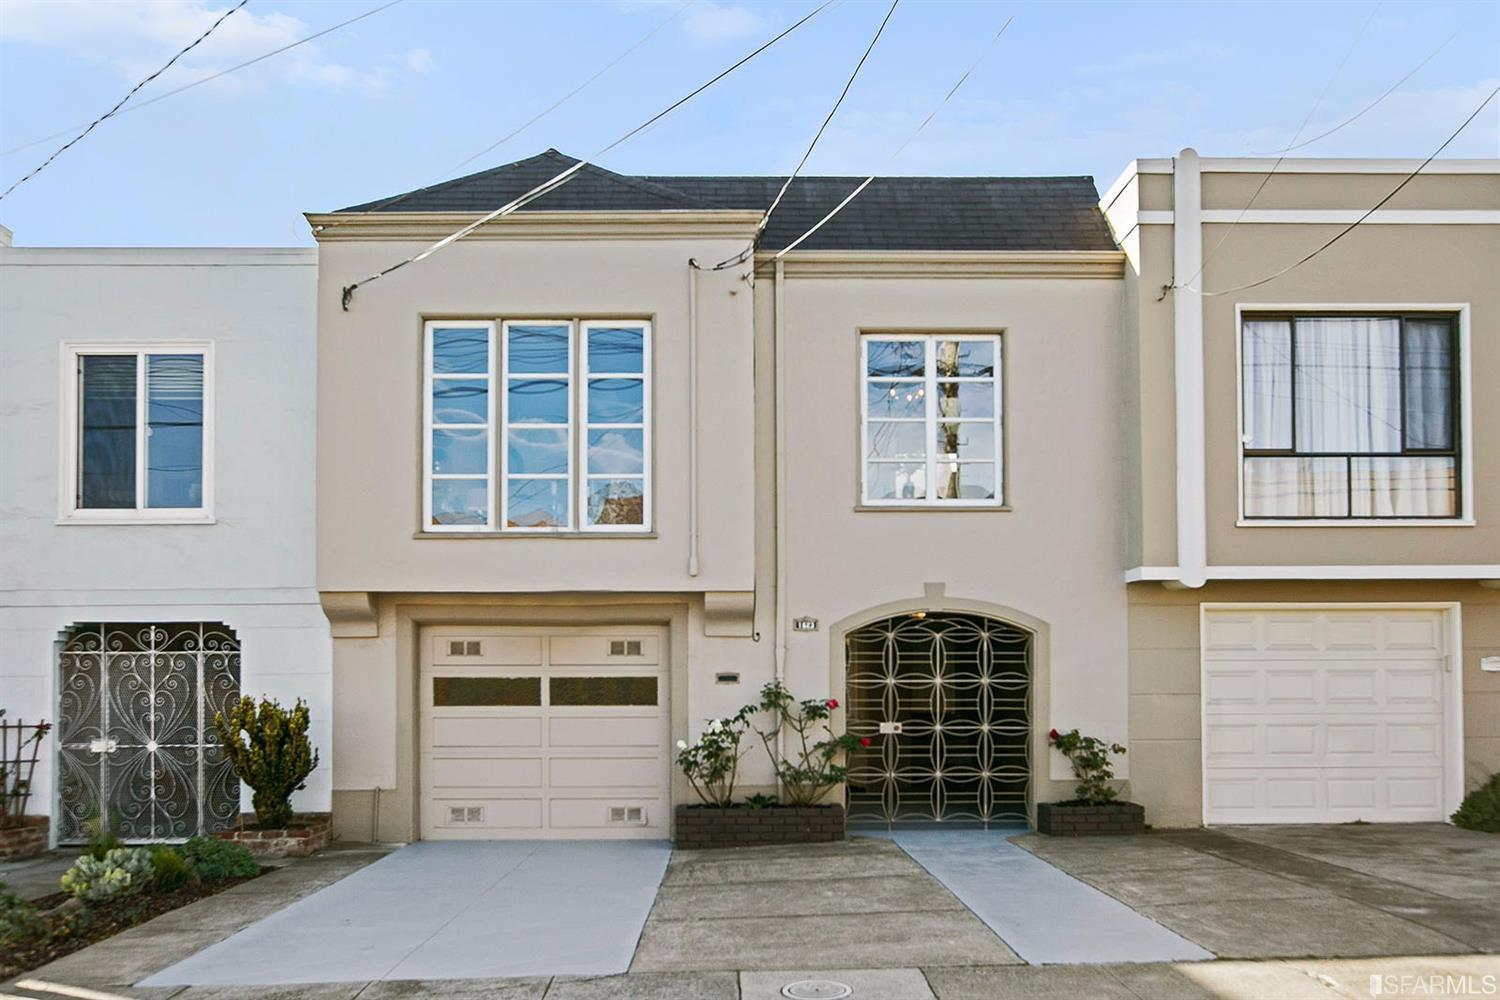 $682,000 Over Asking in the Outer Sunset to End the Year